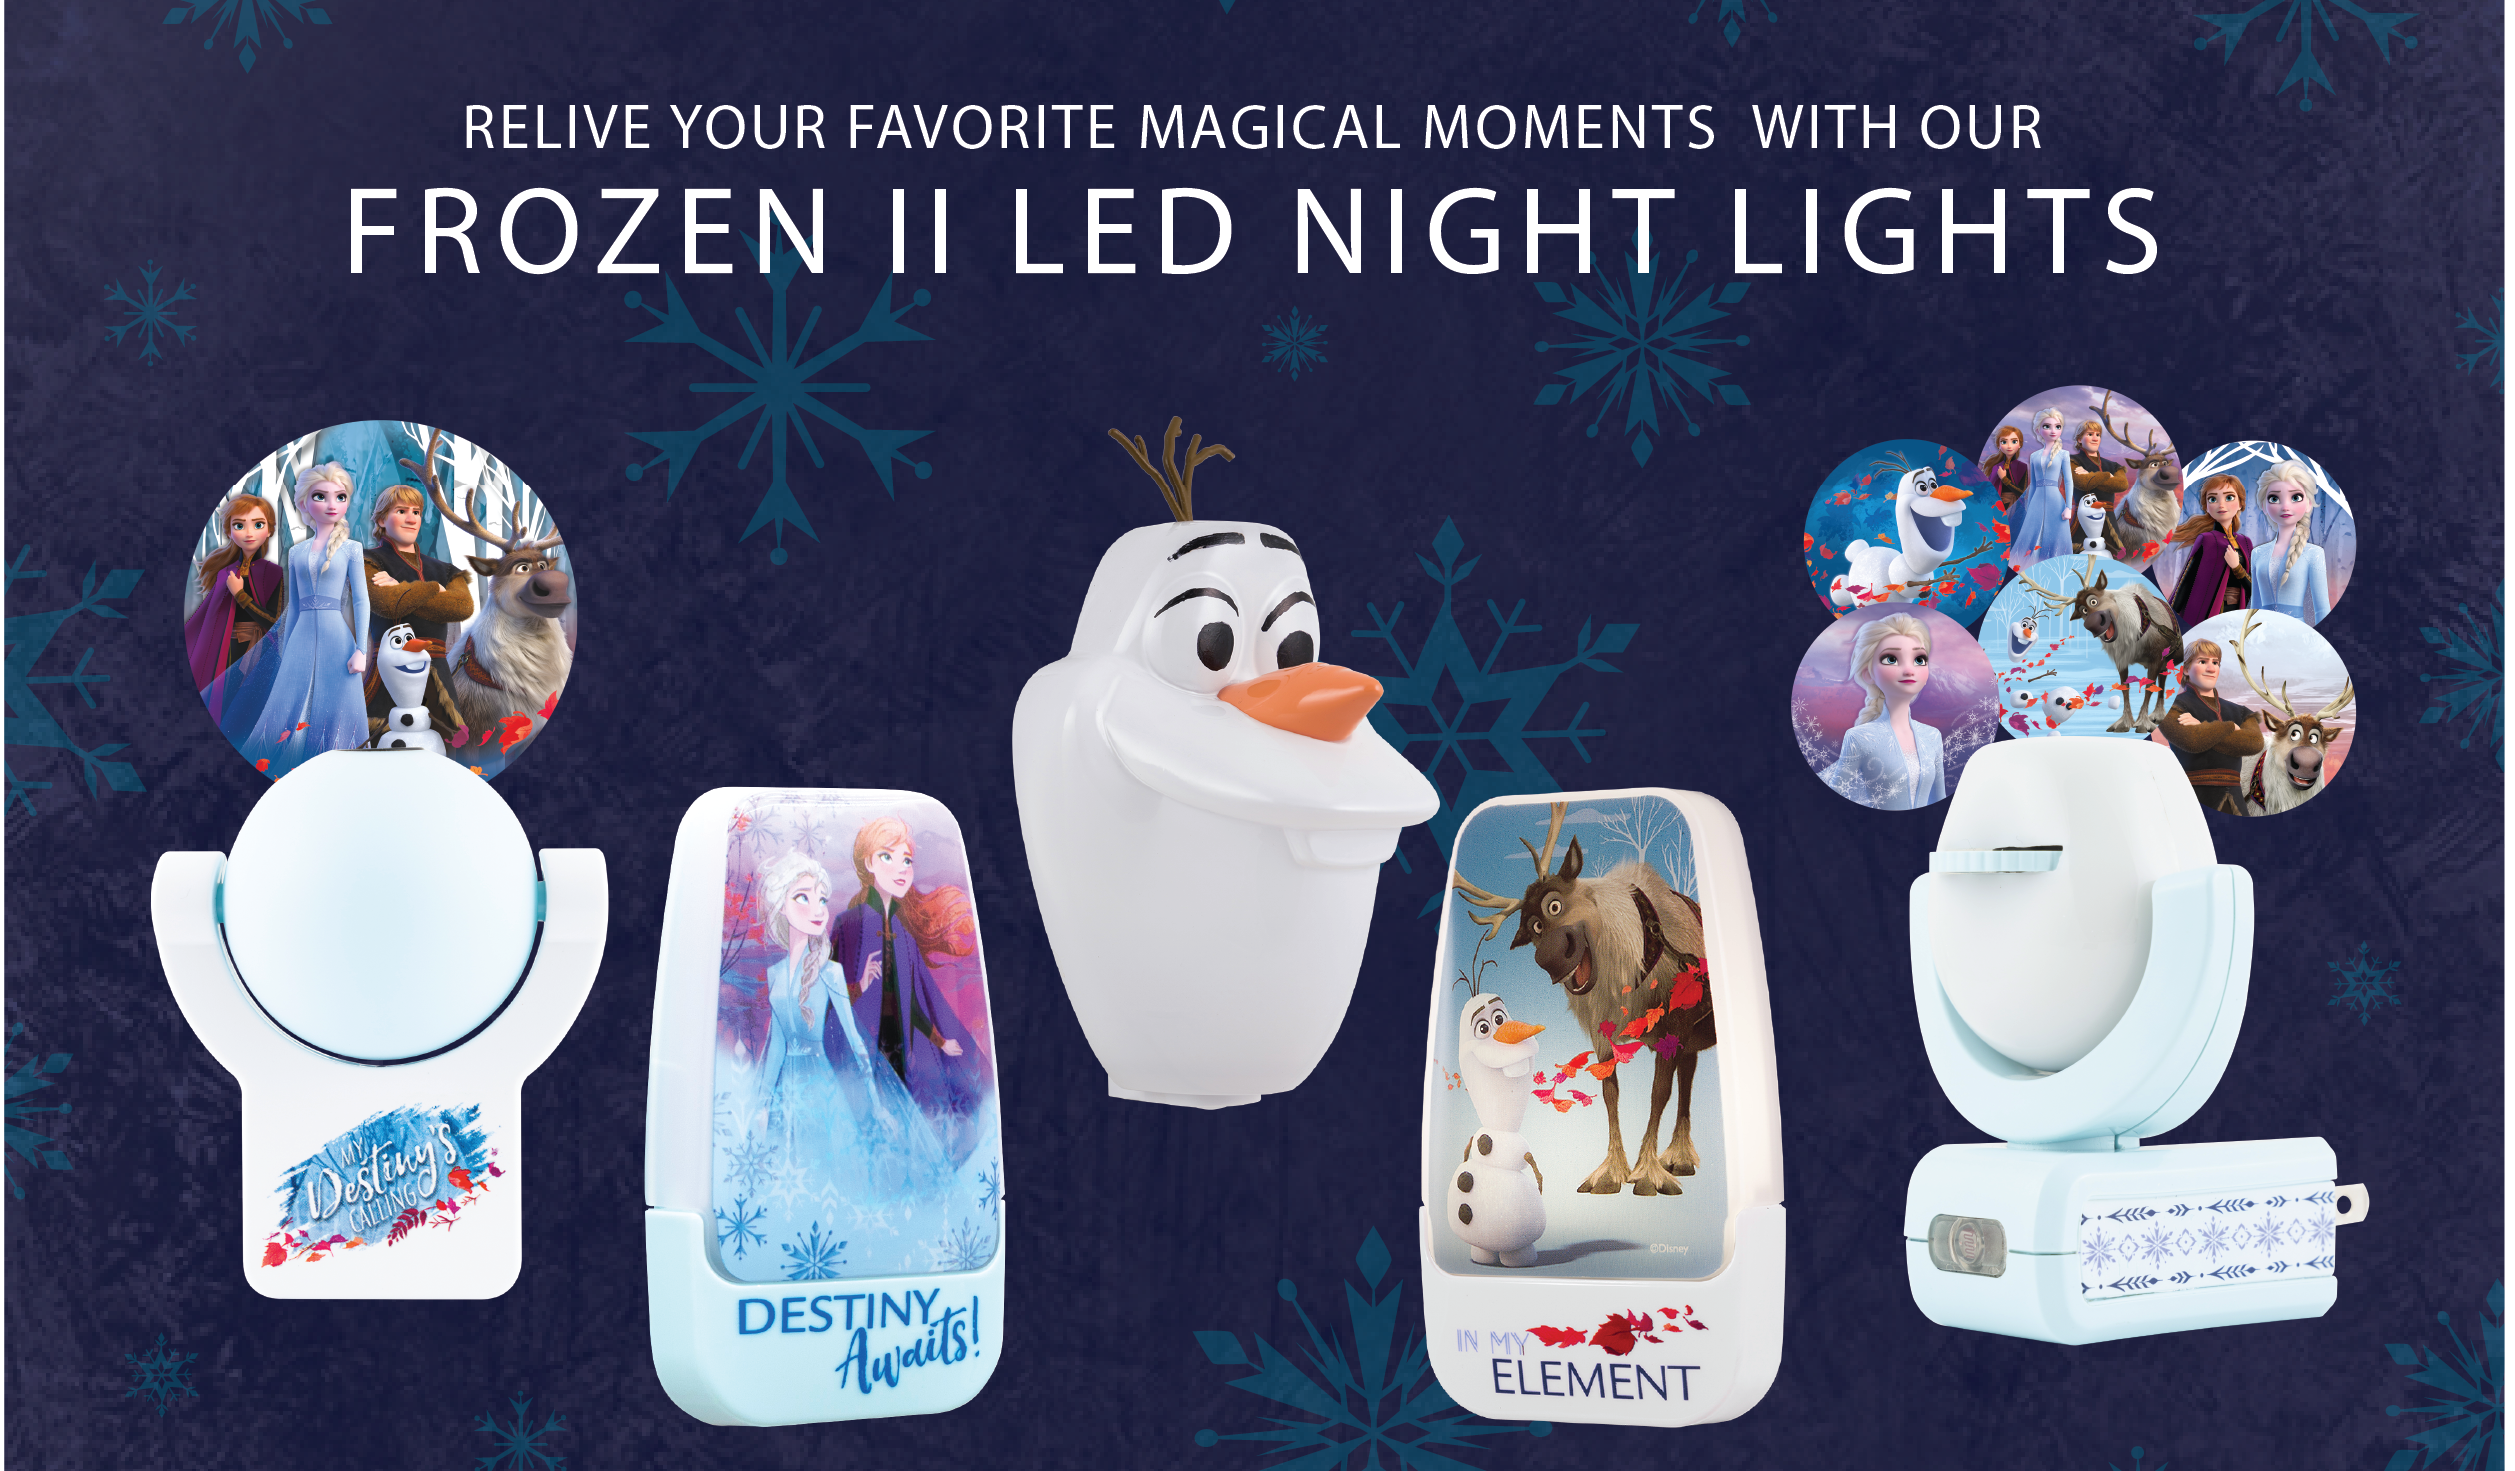 Introducing Our New Frozen 2 Night Light Lineup